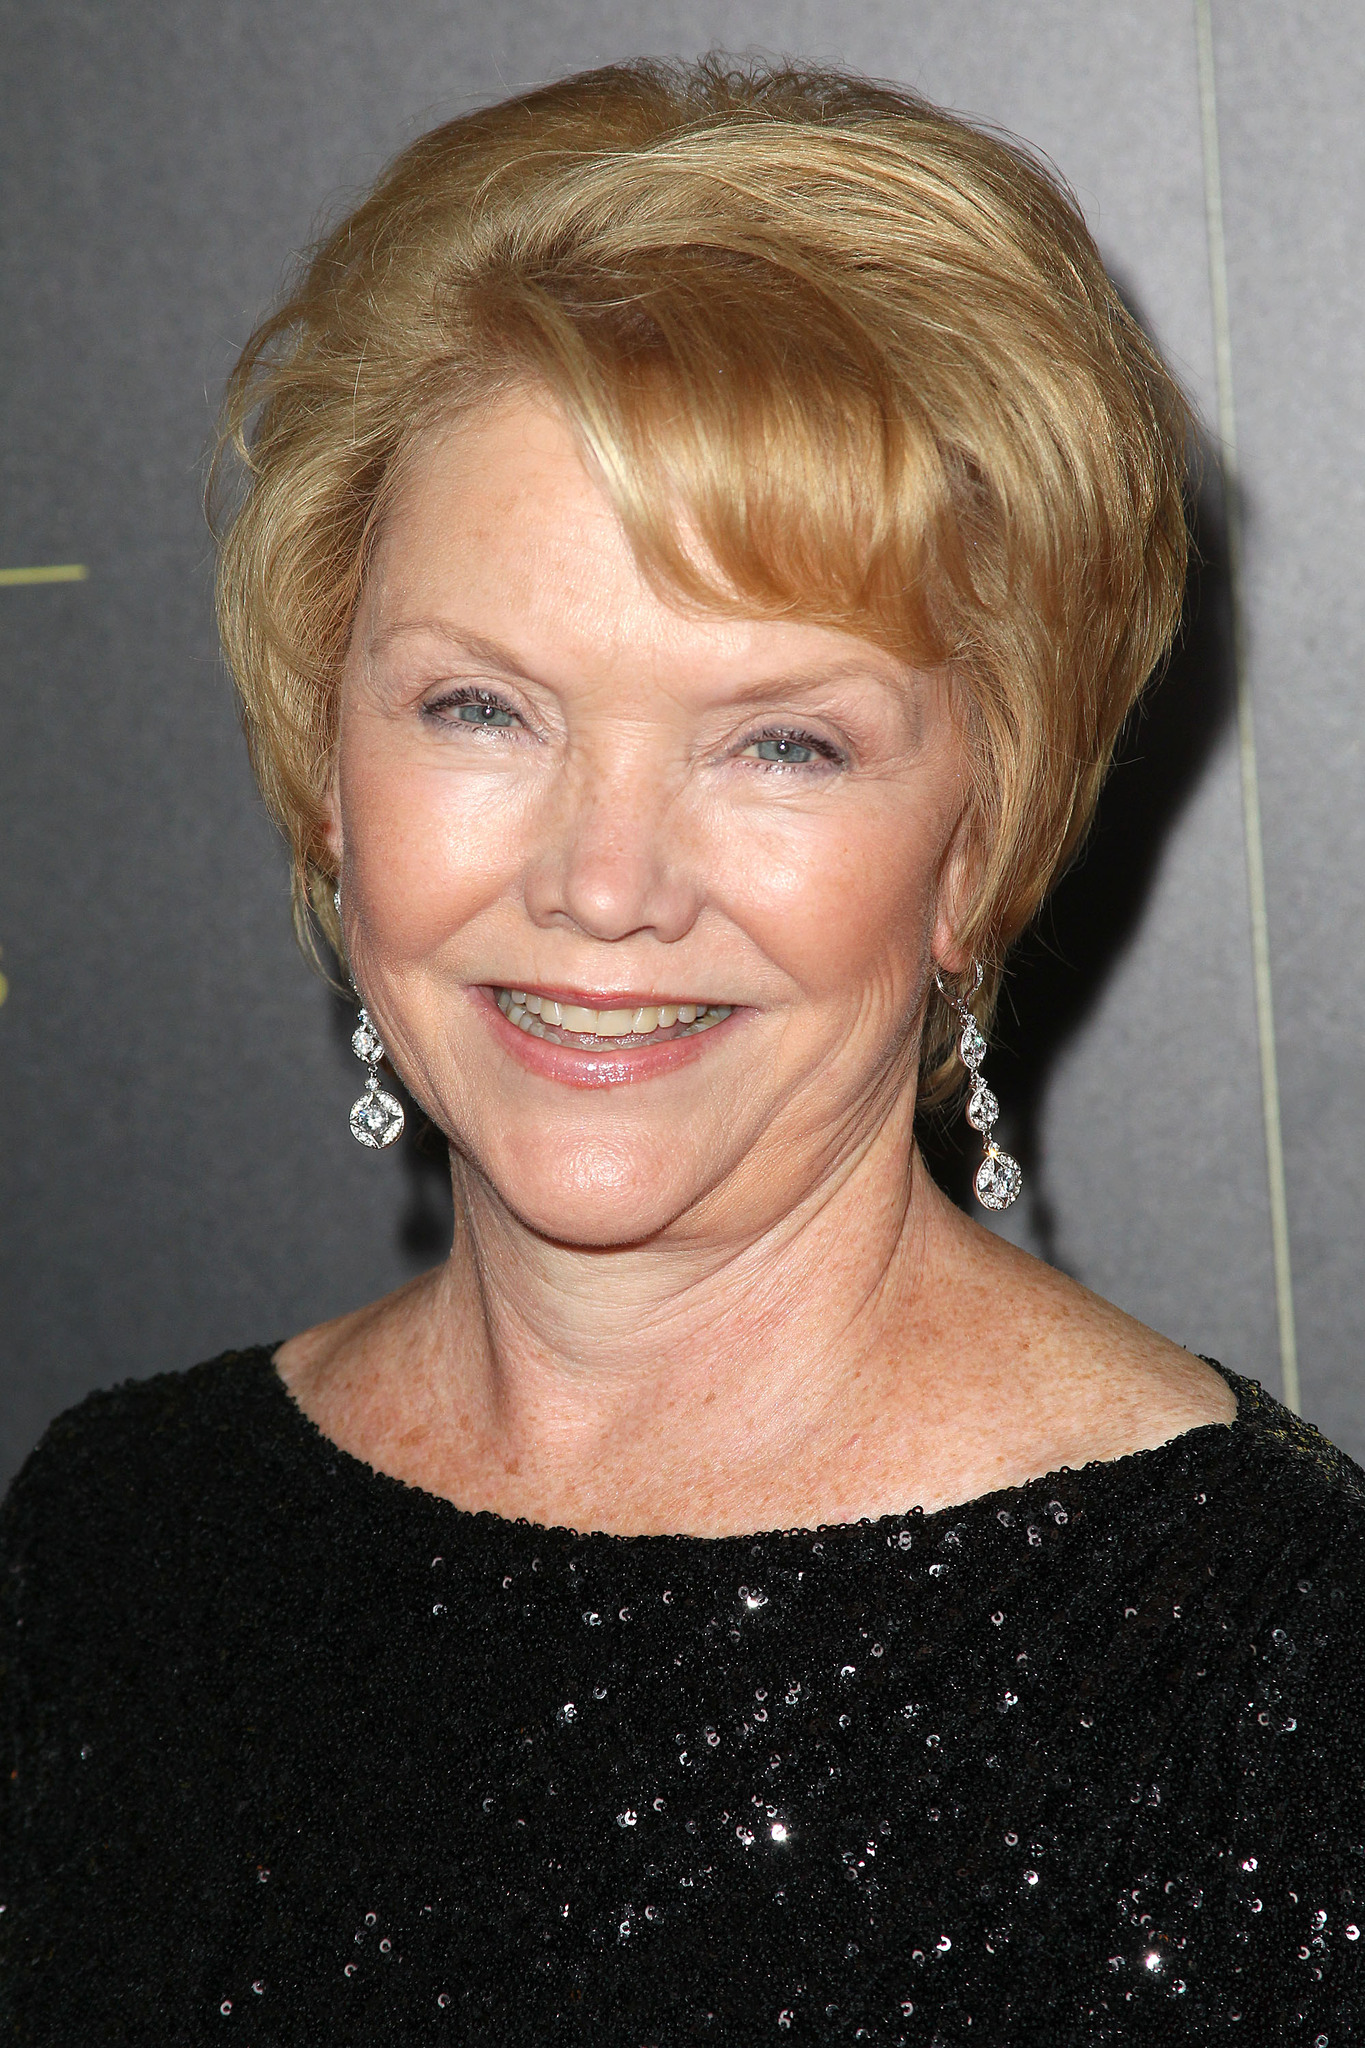 Erika Slezak nude photos 2019